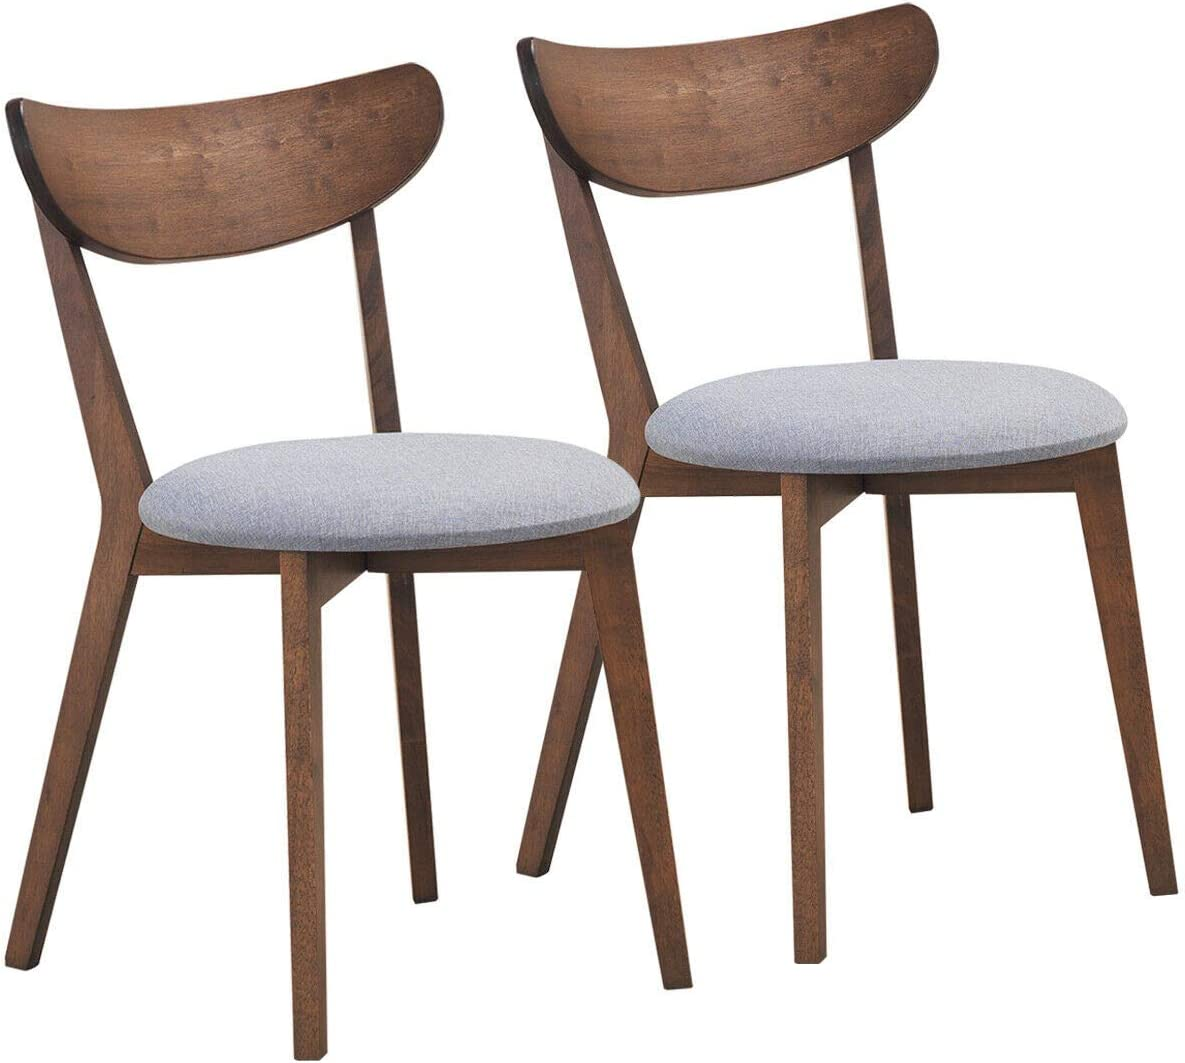 COSTWAY Set of 67% OFF of fixed price 2 Dining Side w Chairs Mid-Century Today's only